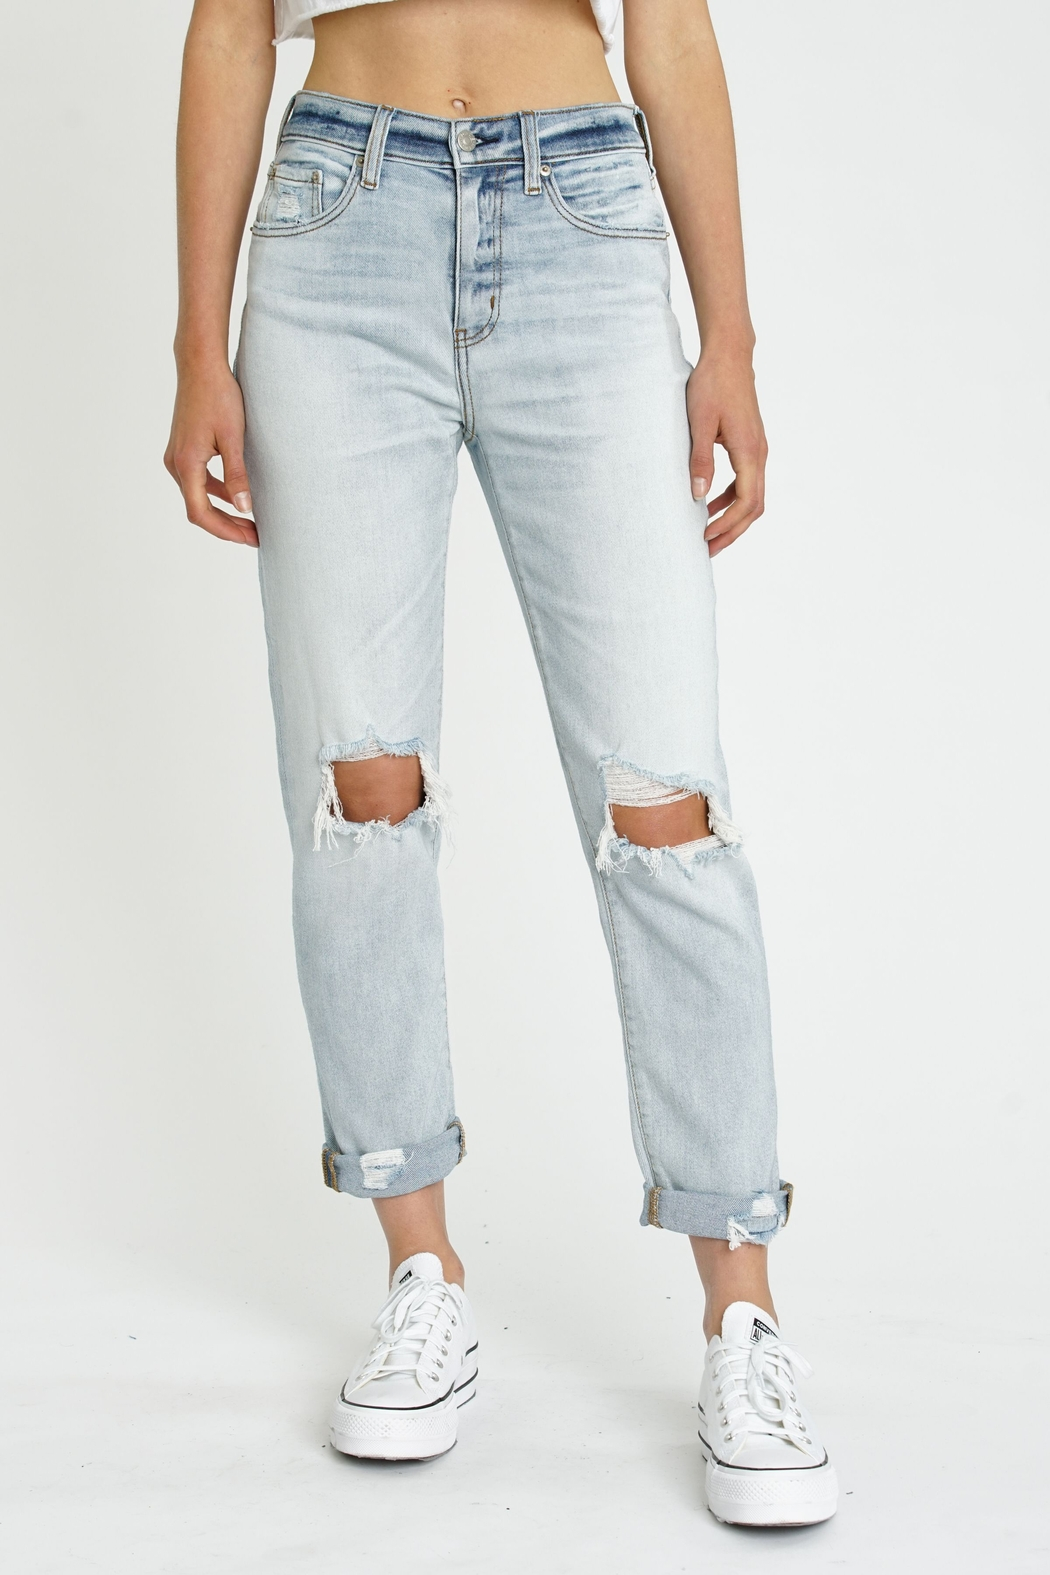 Daze Loverboy High Rise Jeans - FAR OUT - Main Image